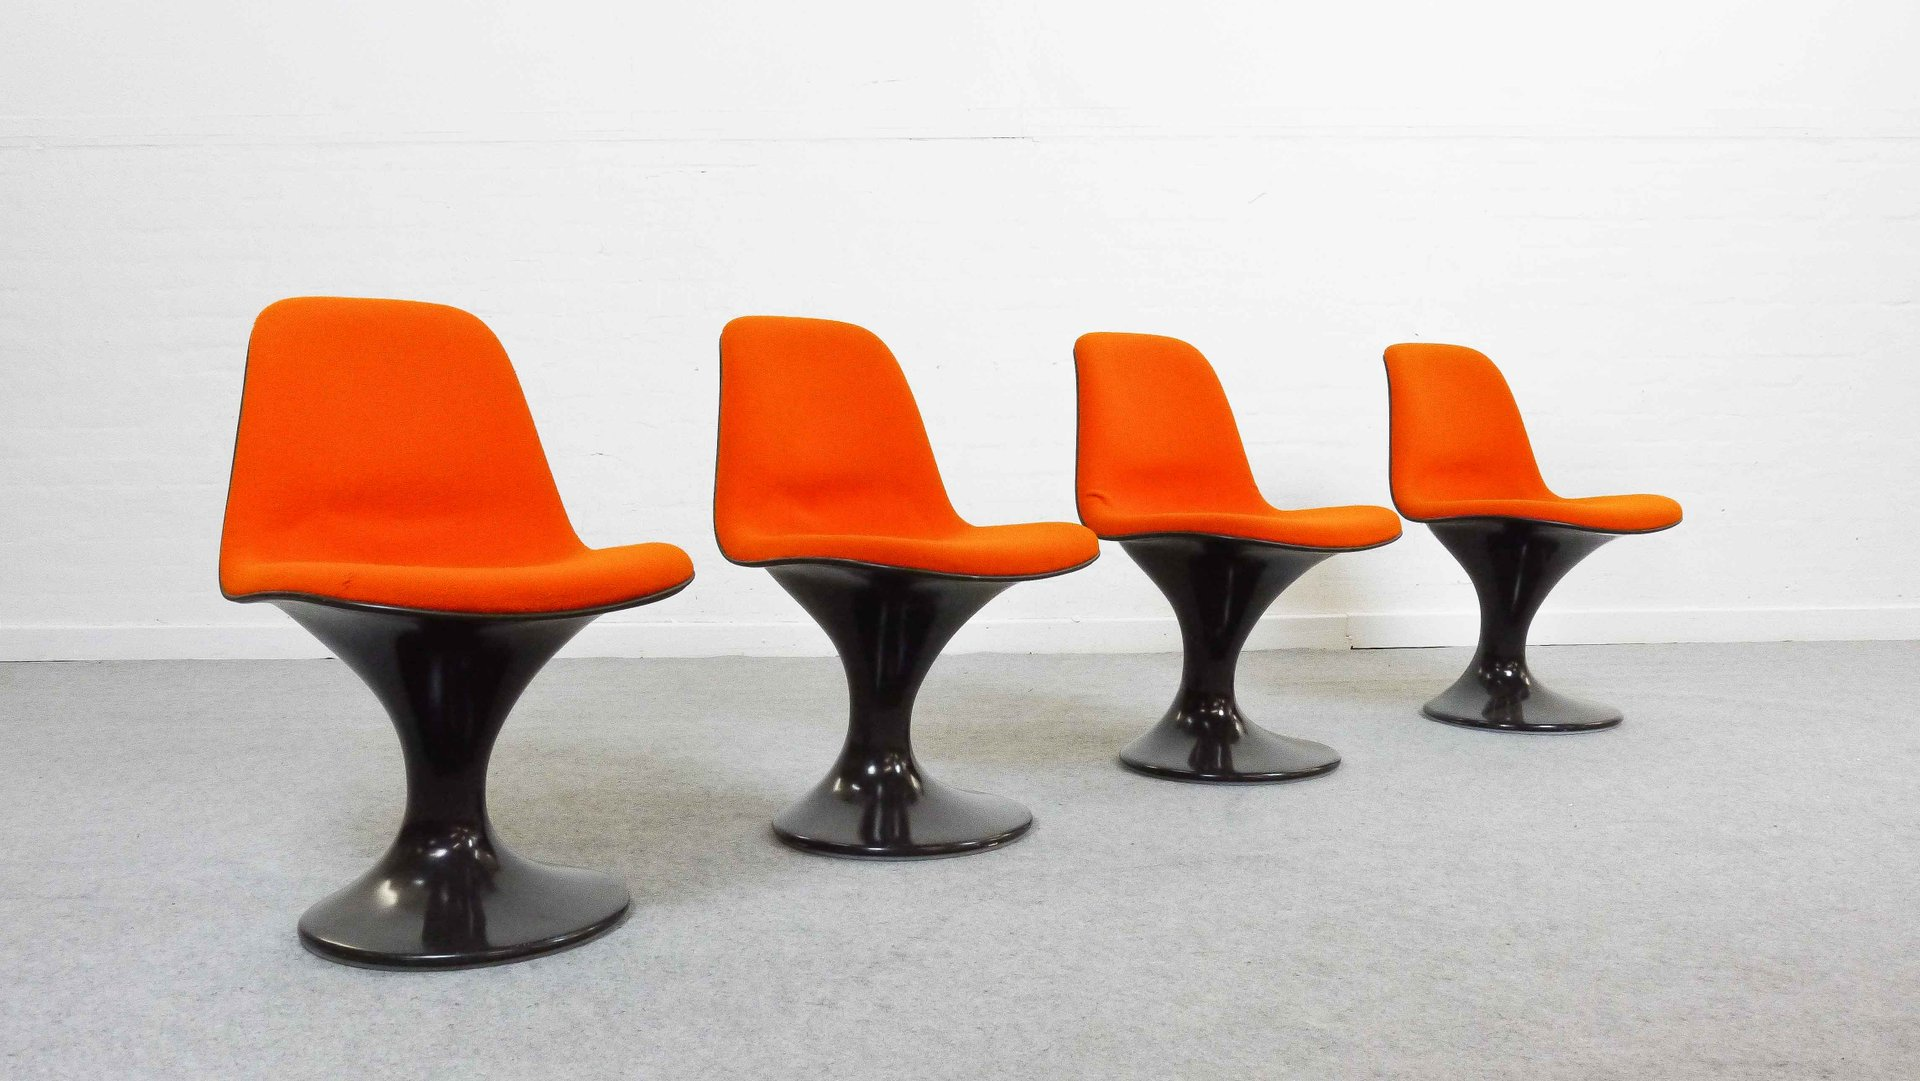 Mid Century Orbit Chairs by Markus Farner & Walter Grunder for